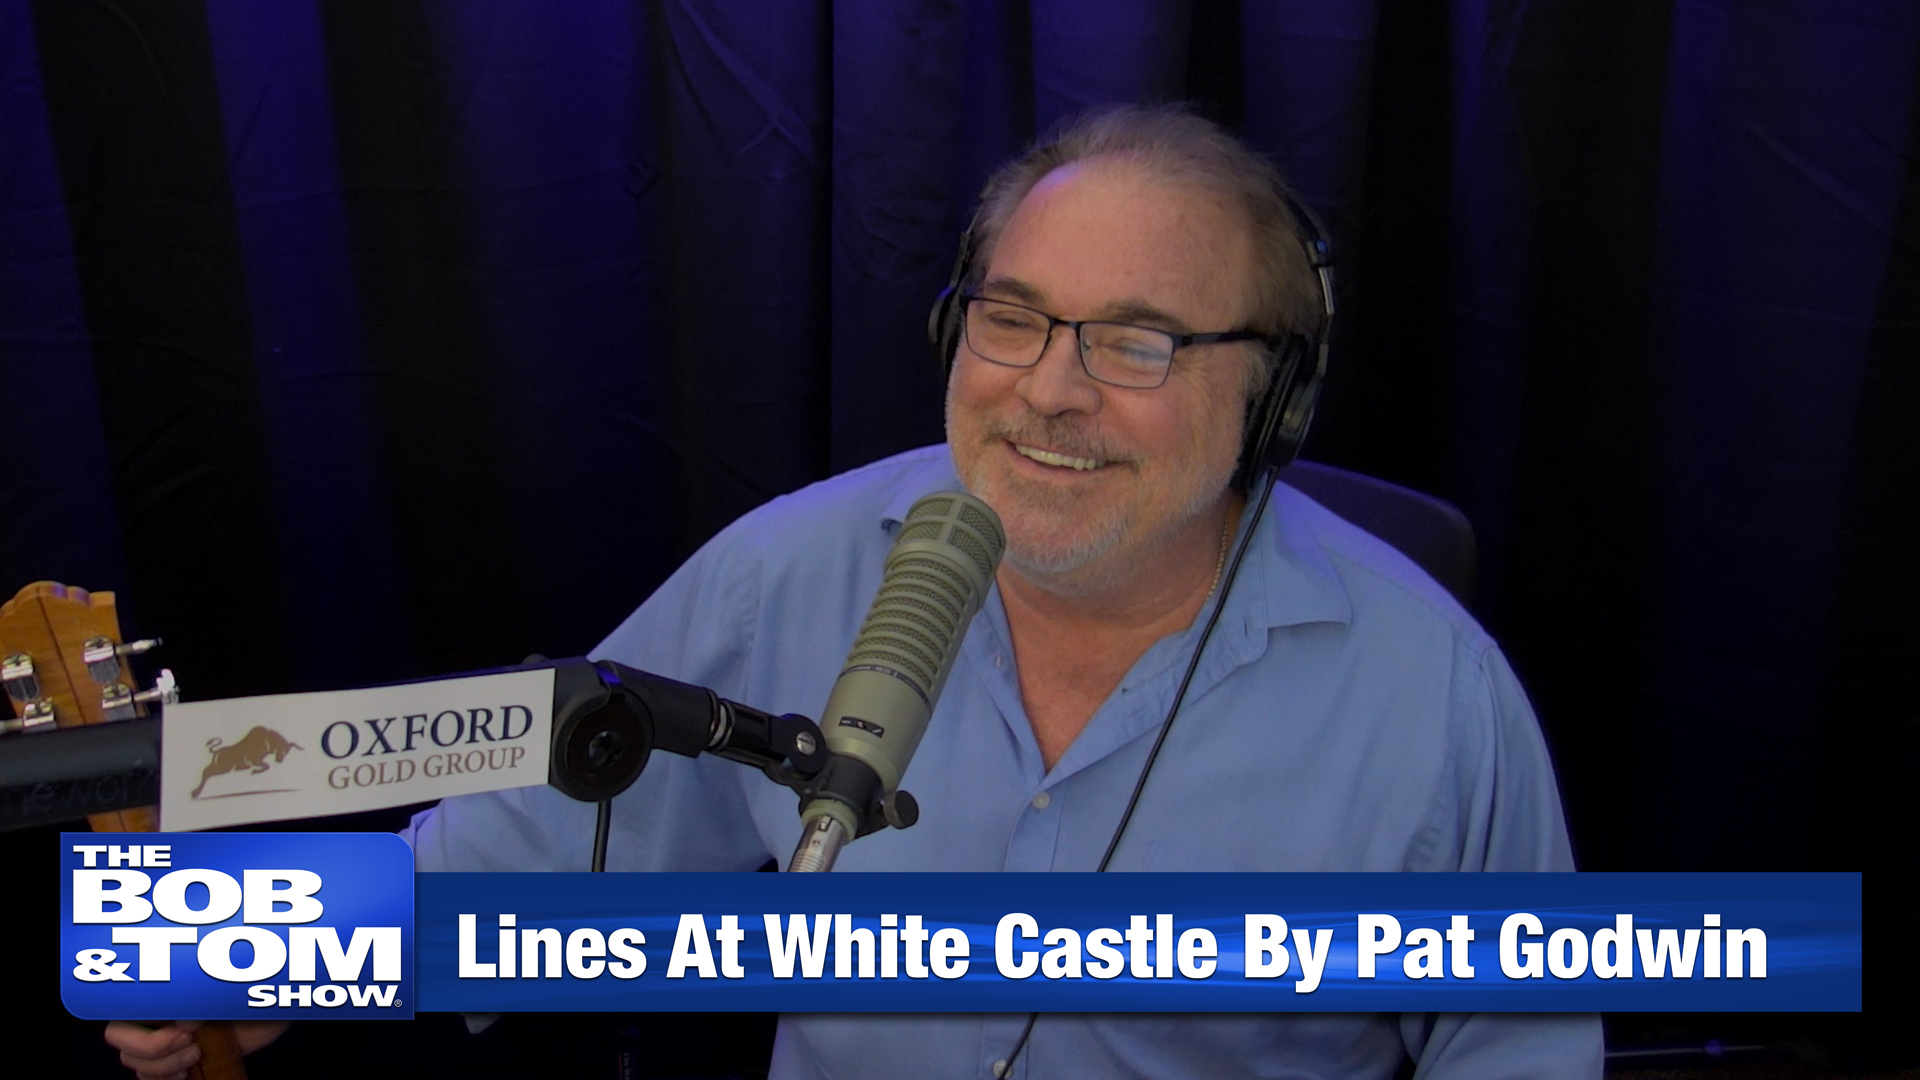 Lines At White Castle By Pat Godwin